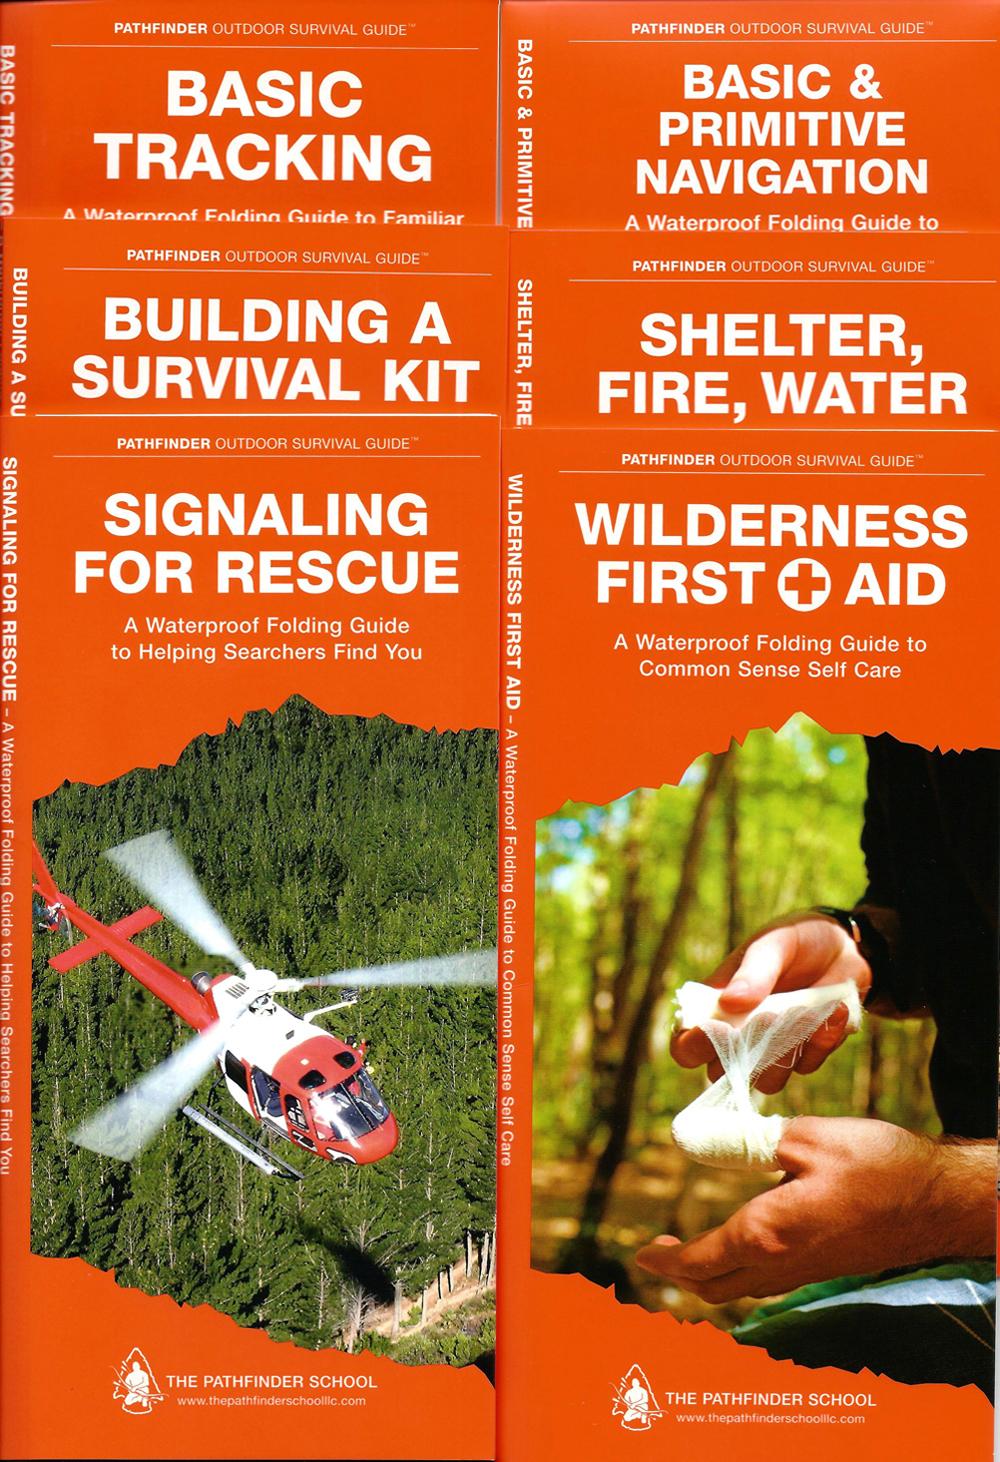 Pathfinder™ Outdoor Survival Guide Collection (Discounted Set of 6 Guides)